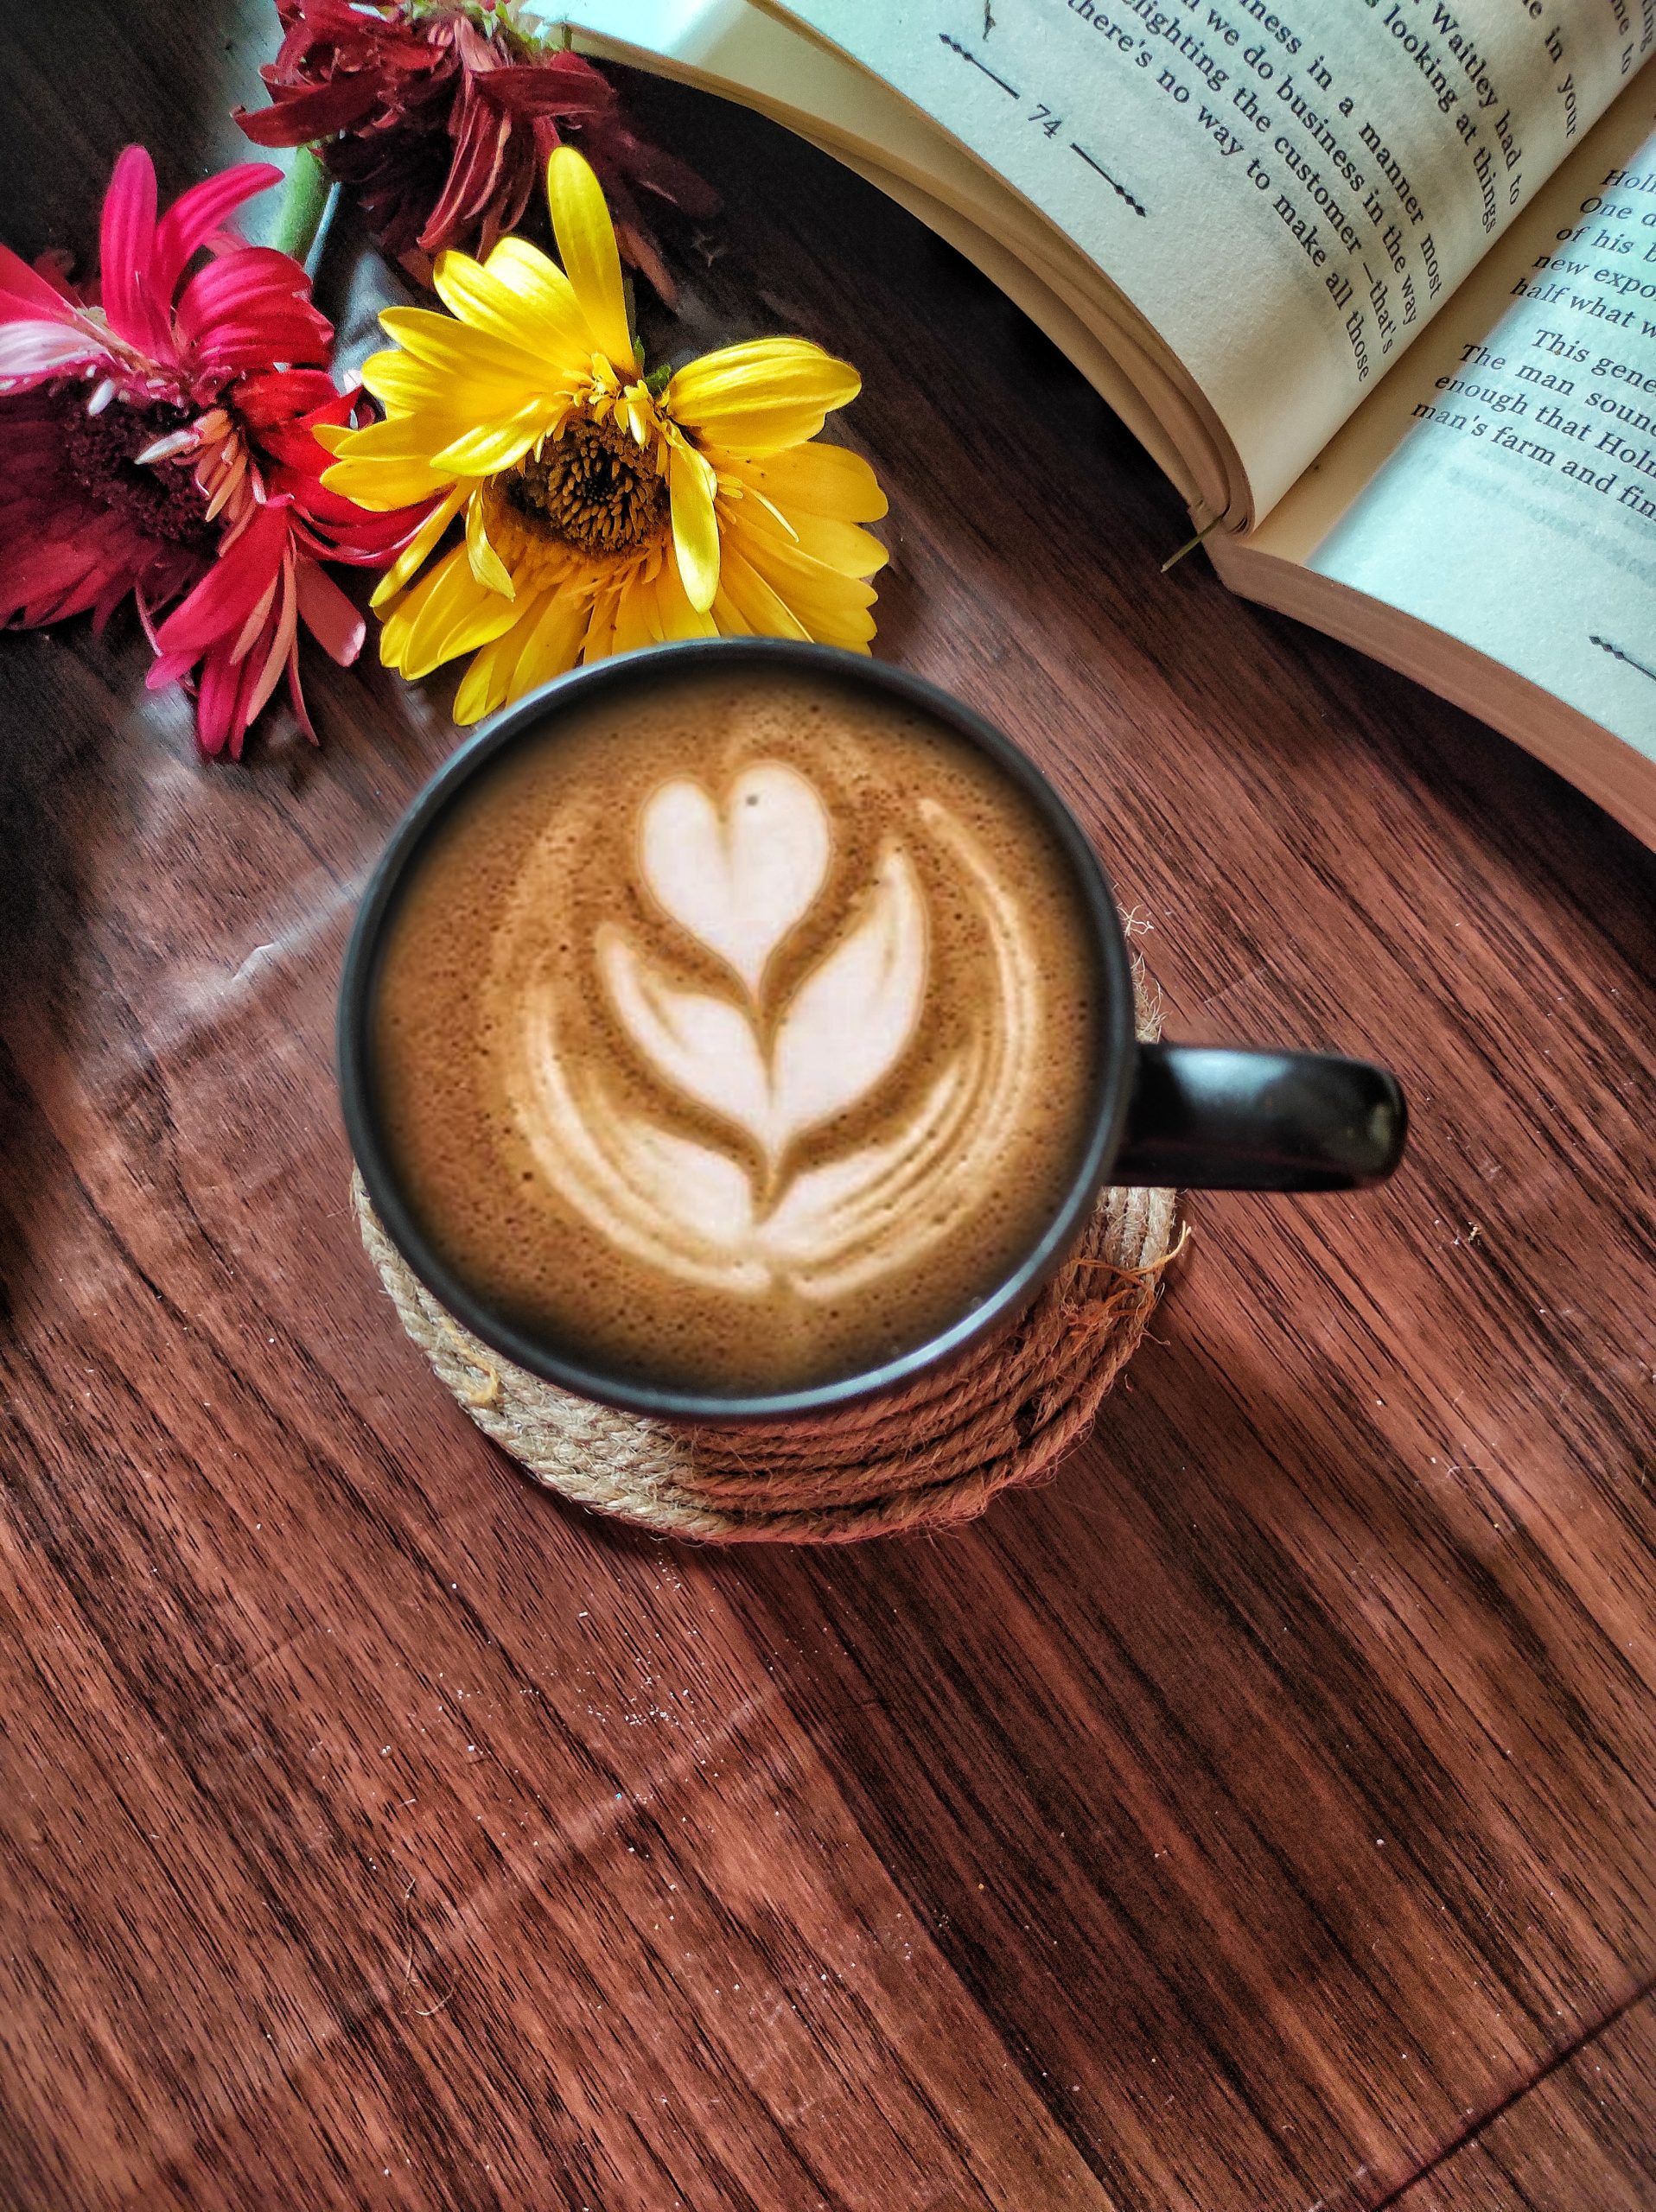 coffee, book and flowers